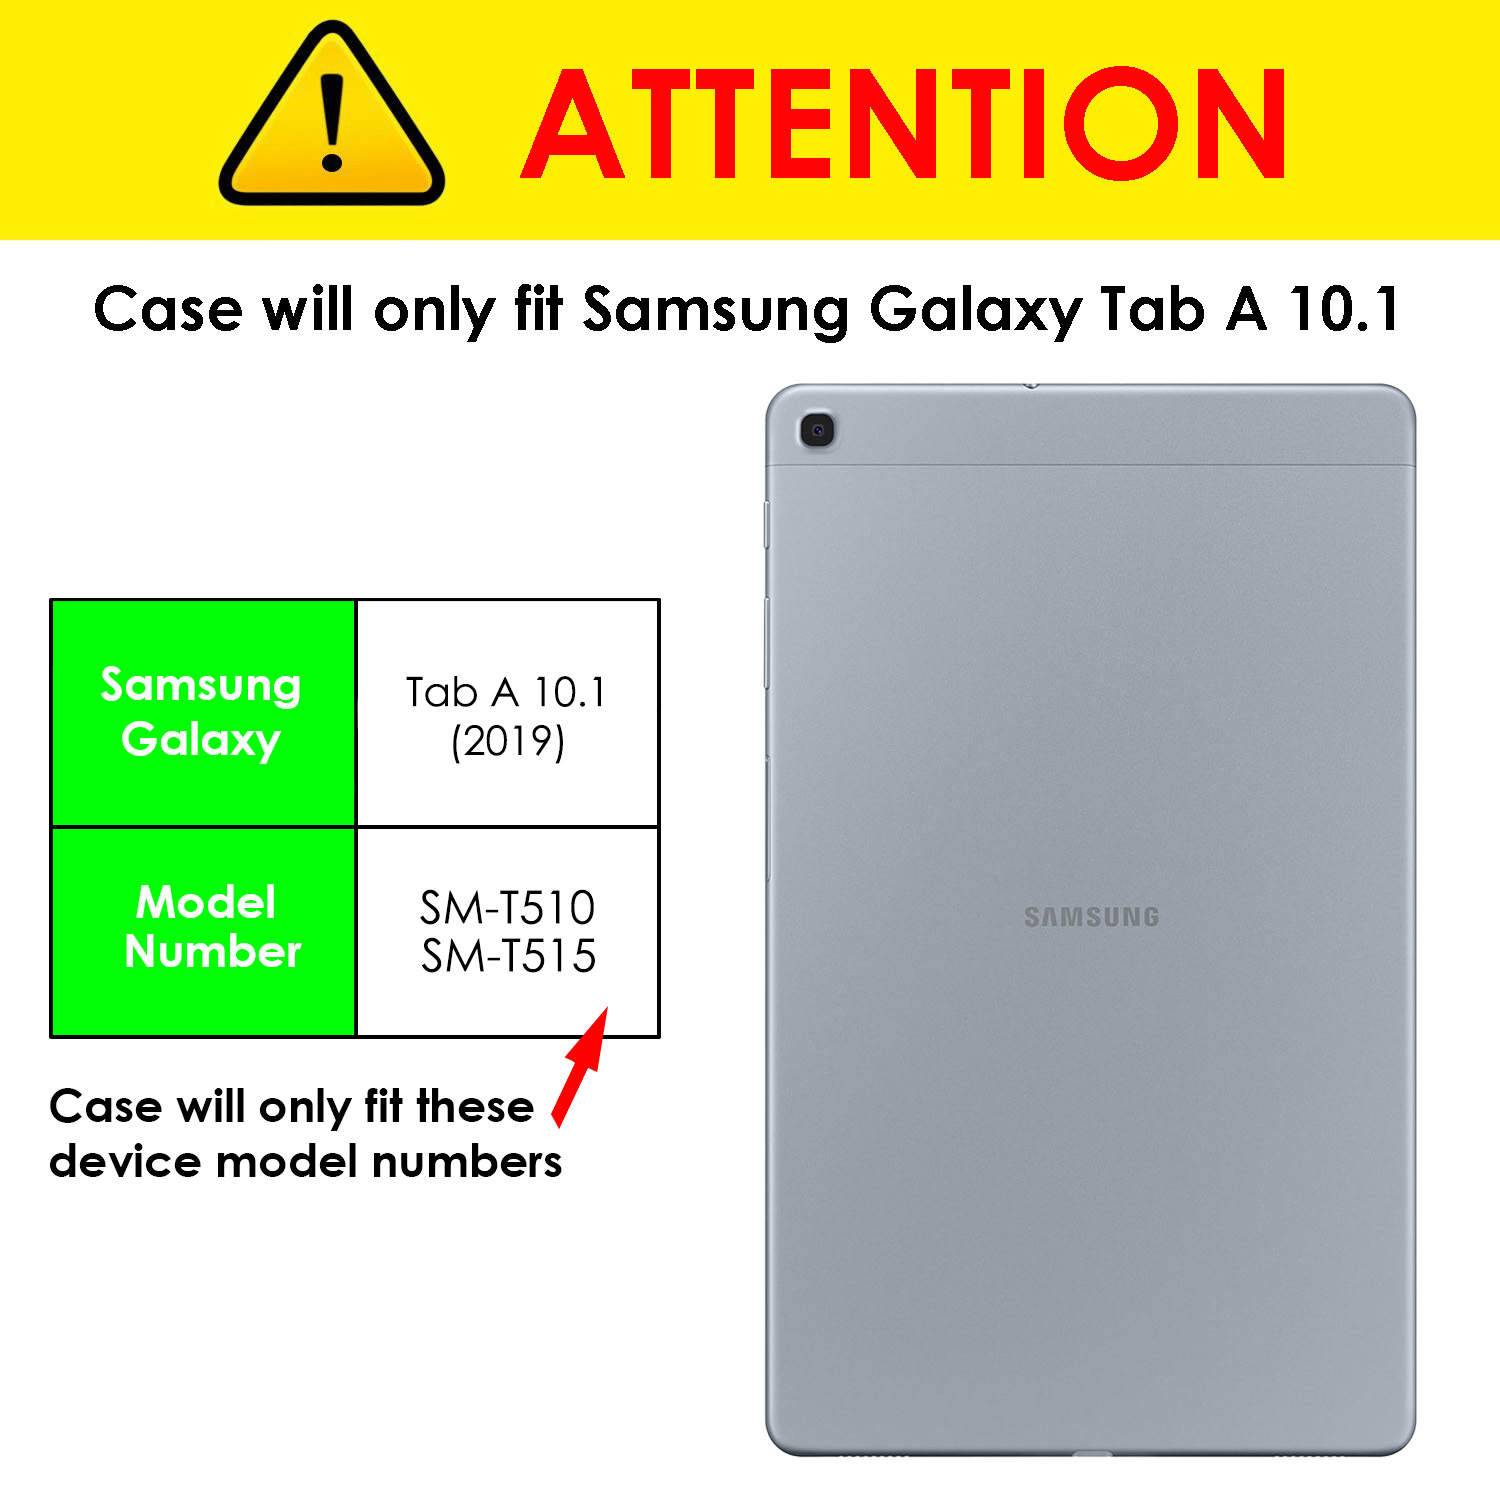 miniature 68 - Samsung Galaxy Tab A 10.1 2019 Étui Magnétique Protection & Support + Stylet